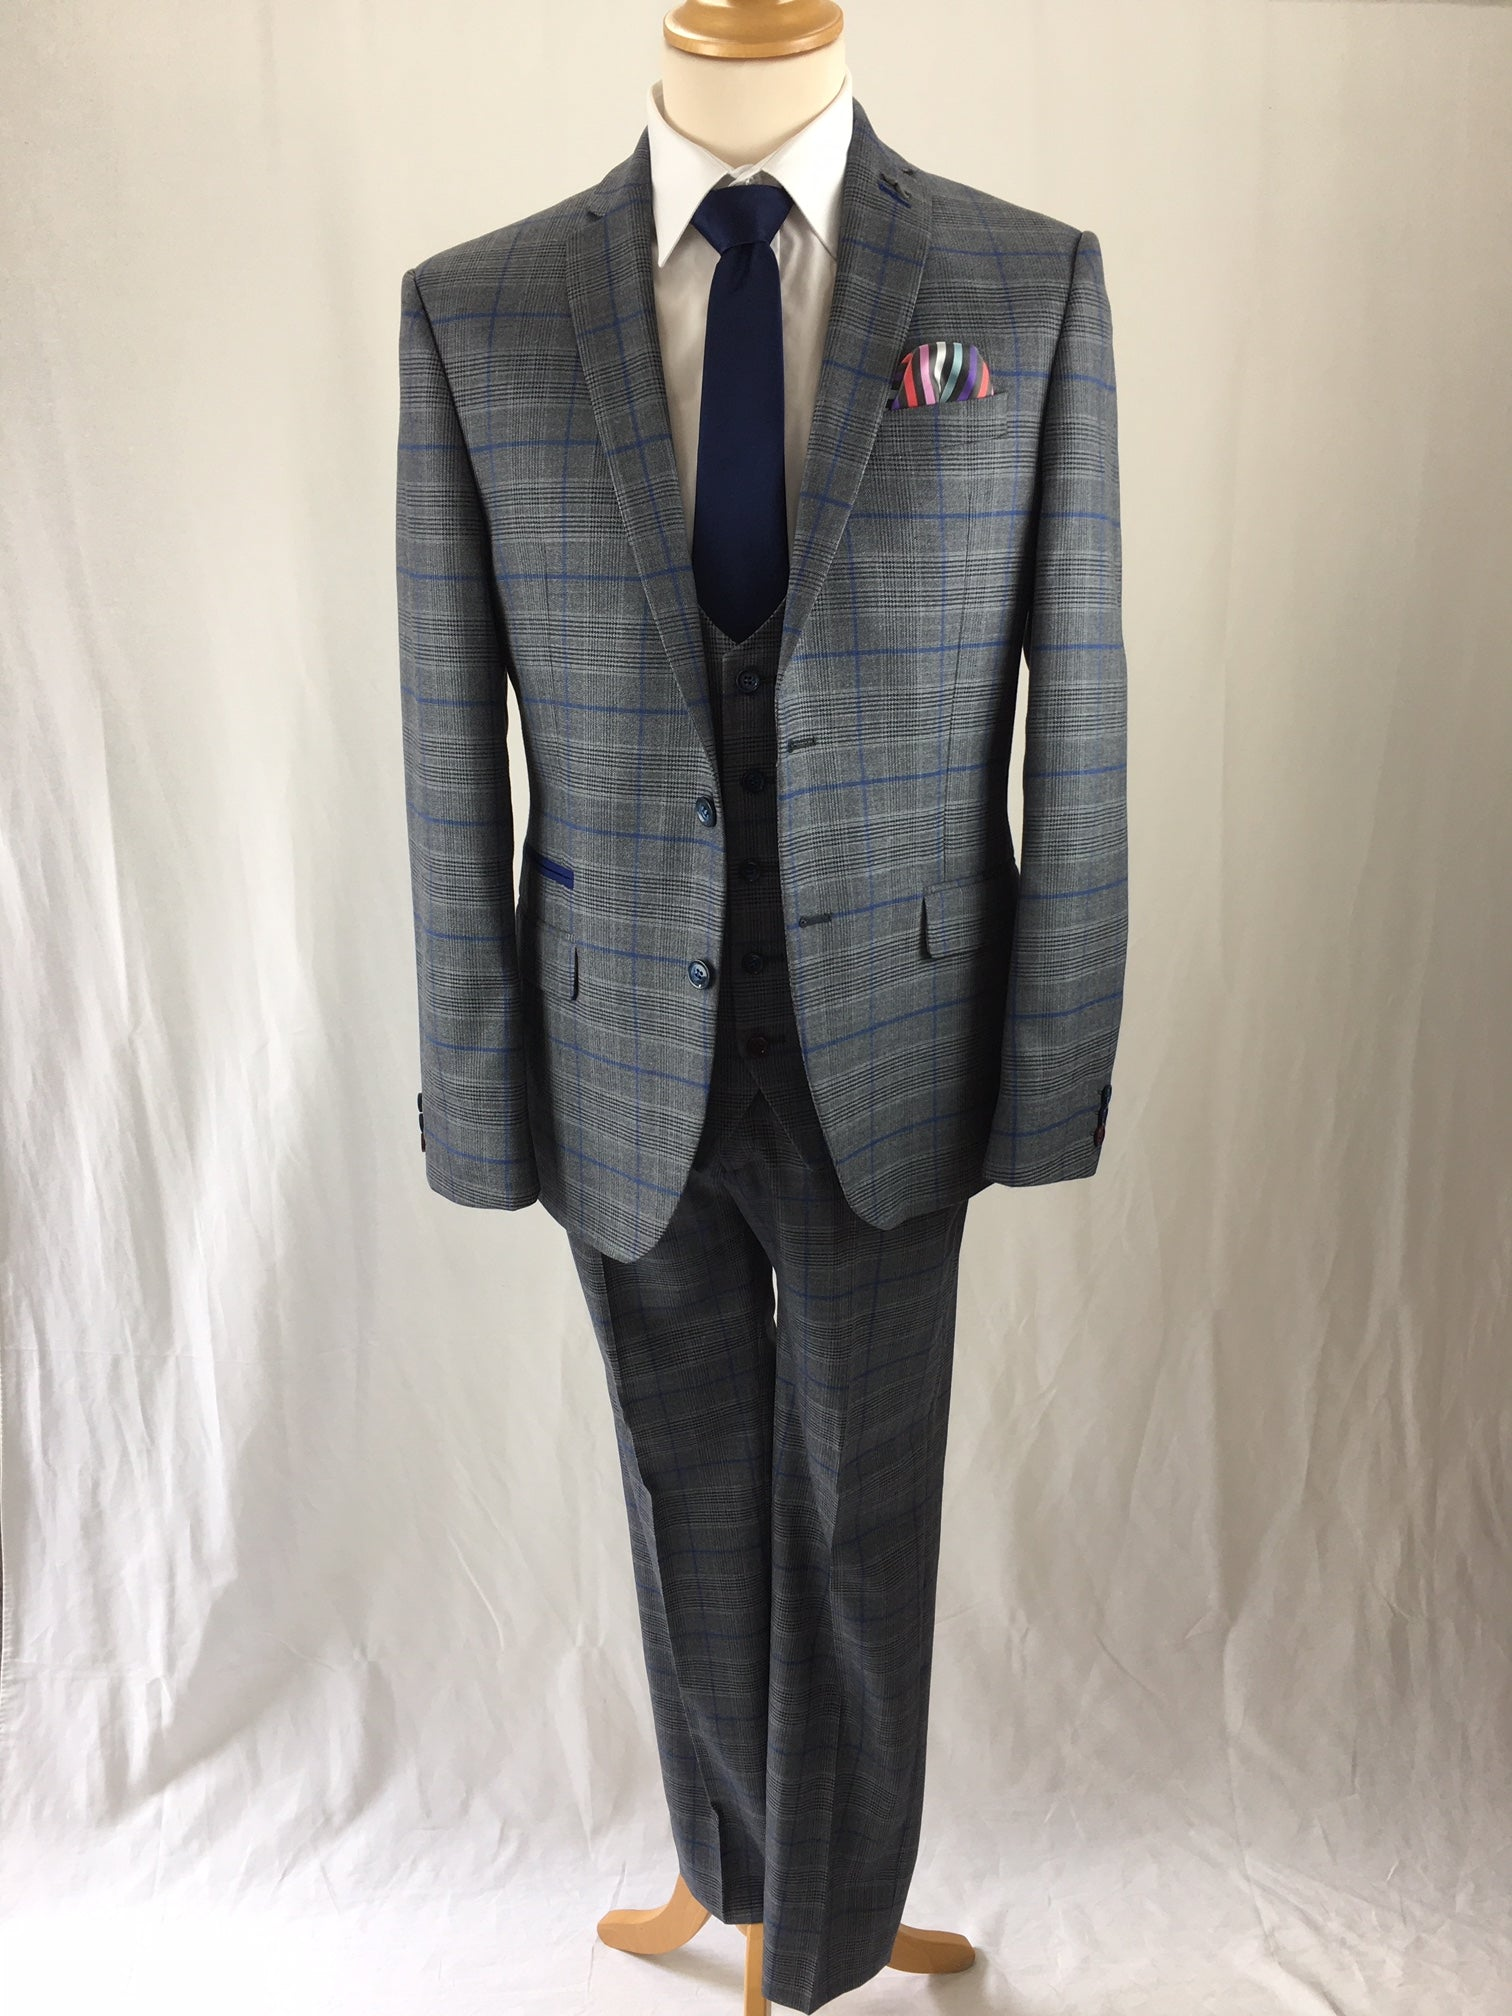 Antique Rogue 3 Piece Grey & Blue Check Suit